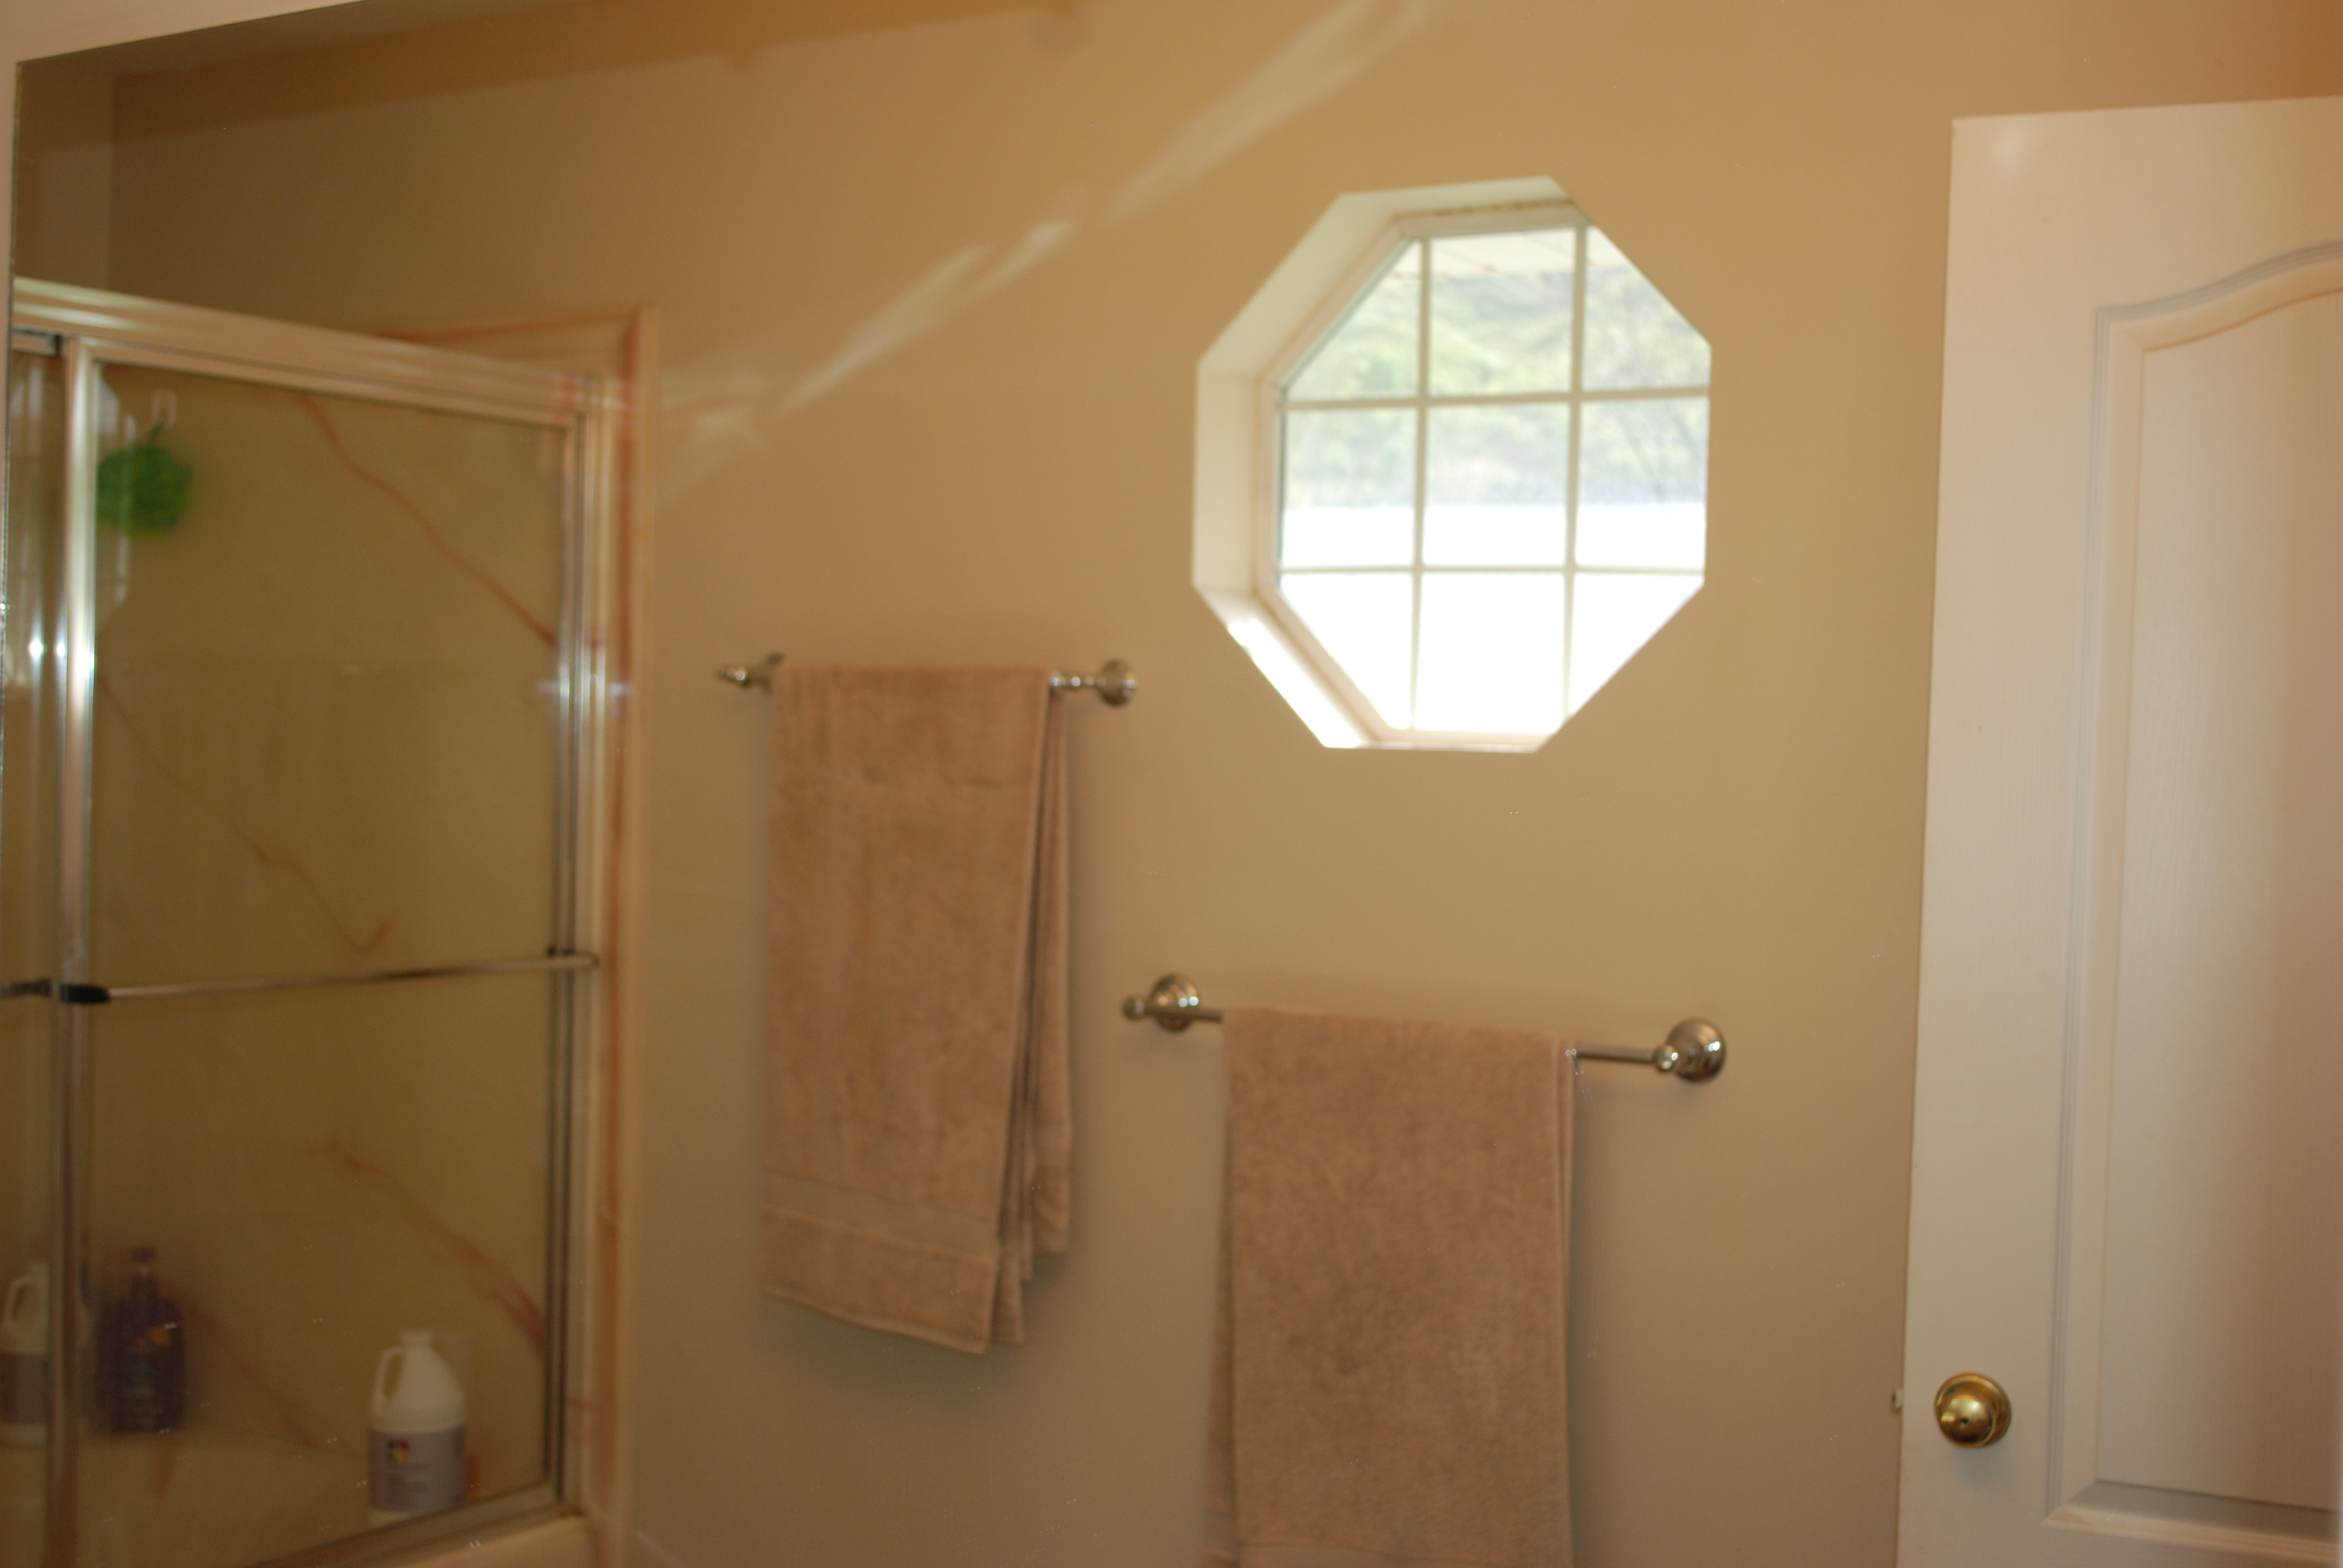 Keep bathroom mirror from fogging 28 images tricks to keep mirrors from fogging boldsky - Simple ways keep bathroom mirror fogging ...